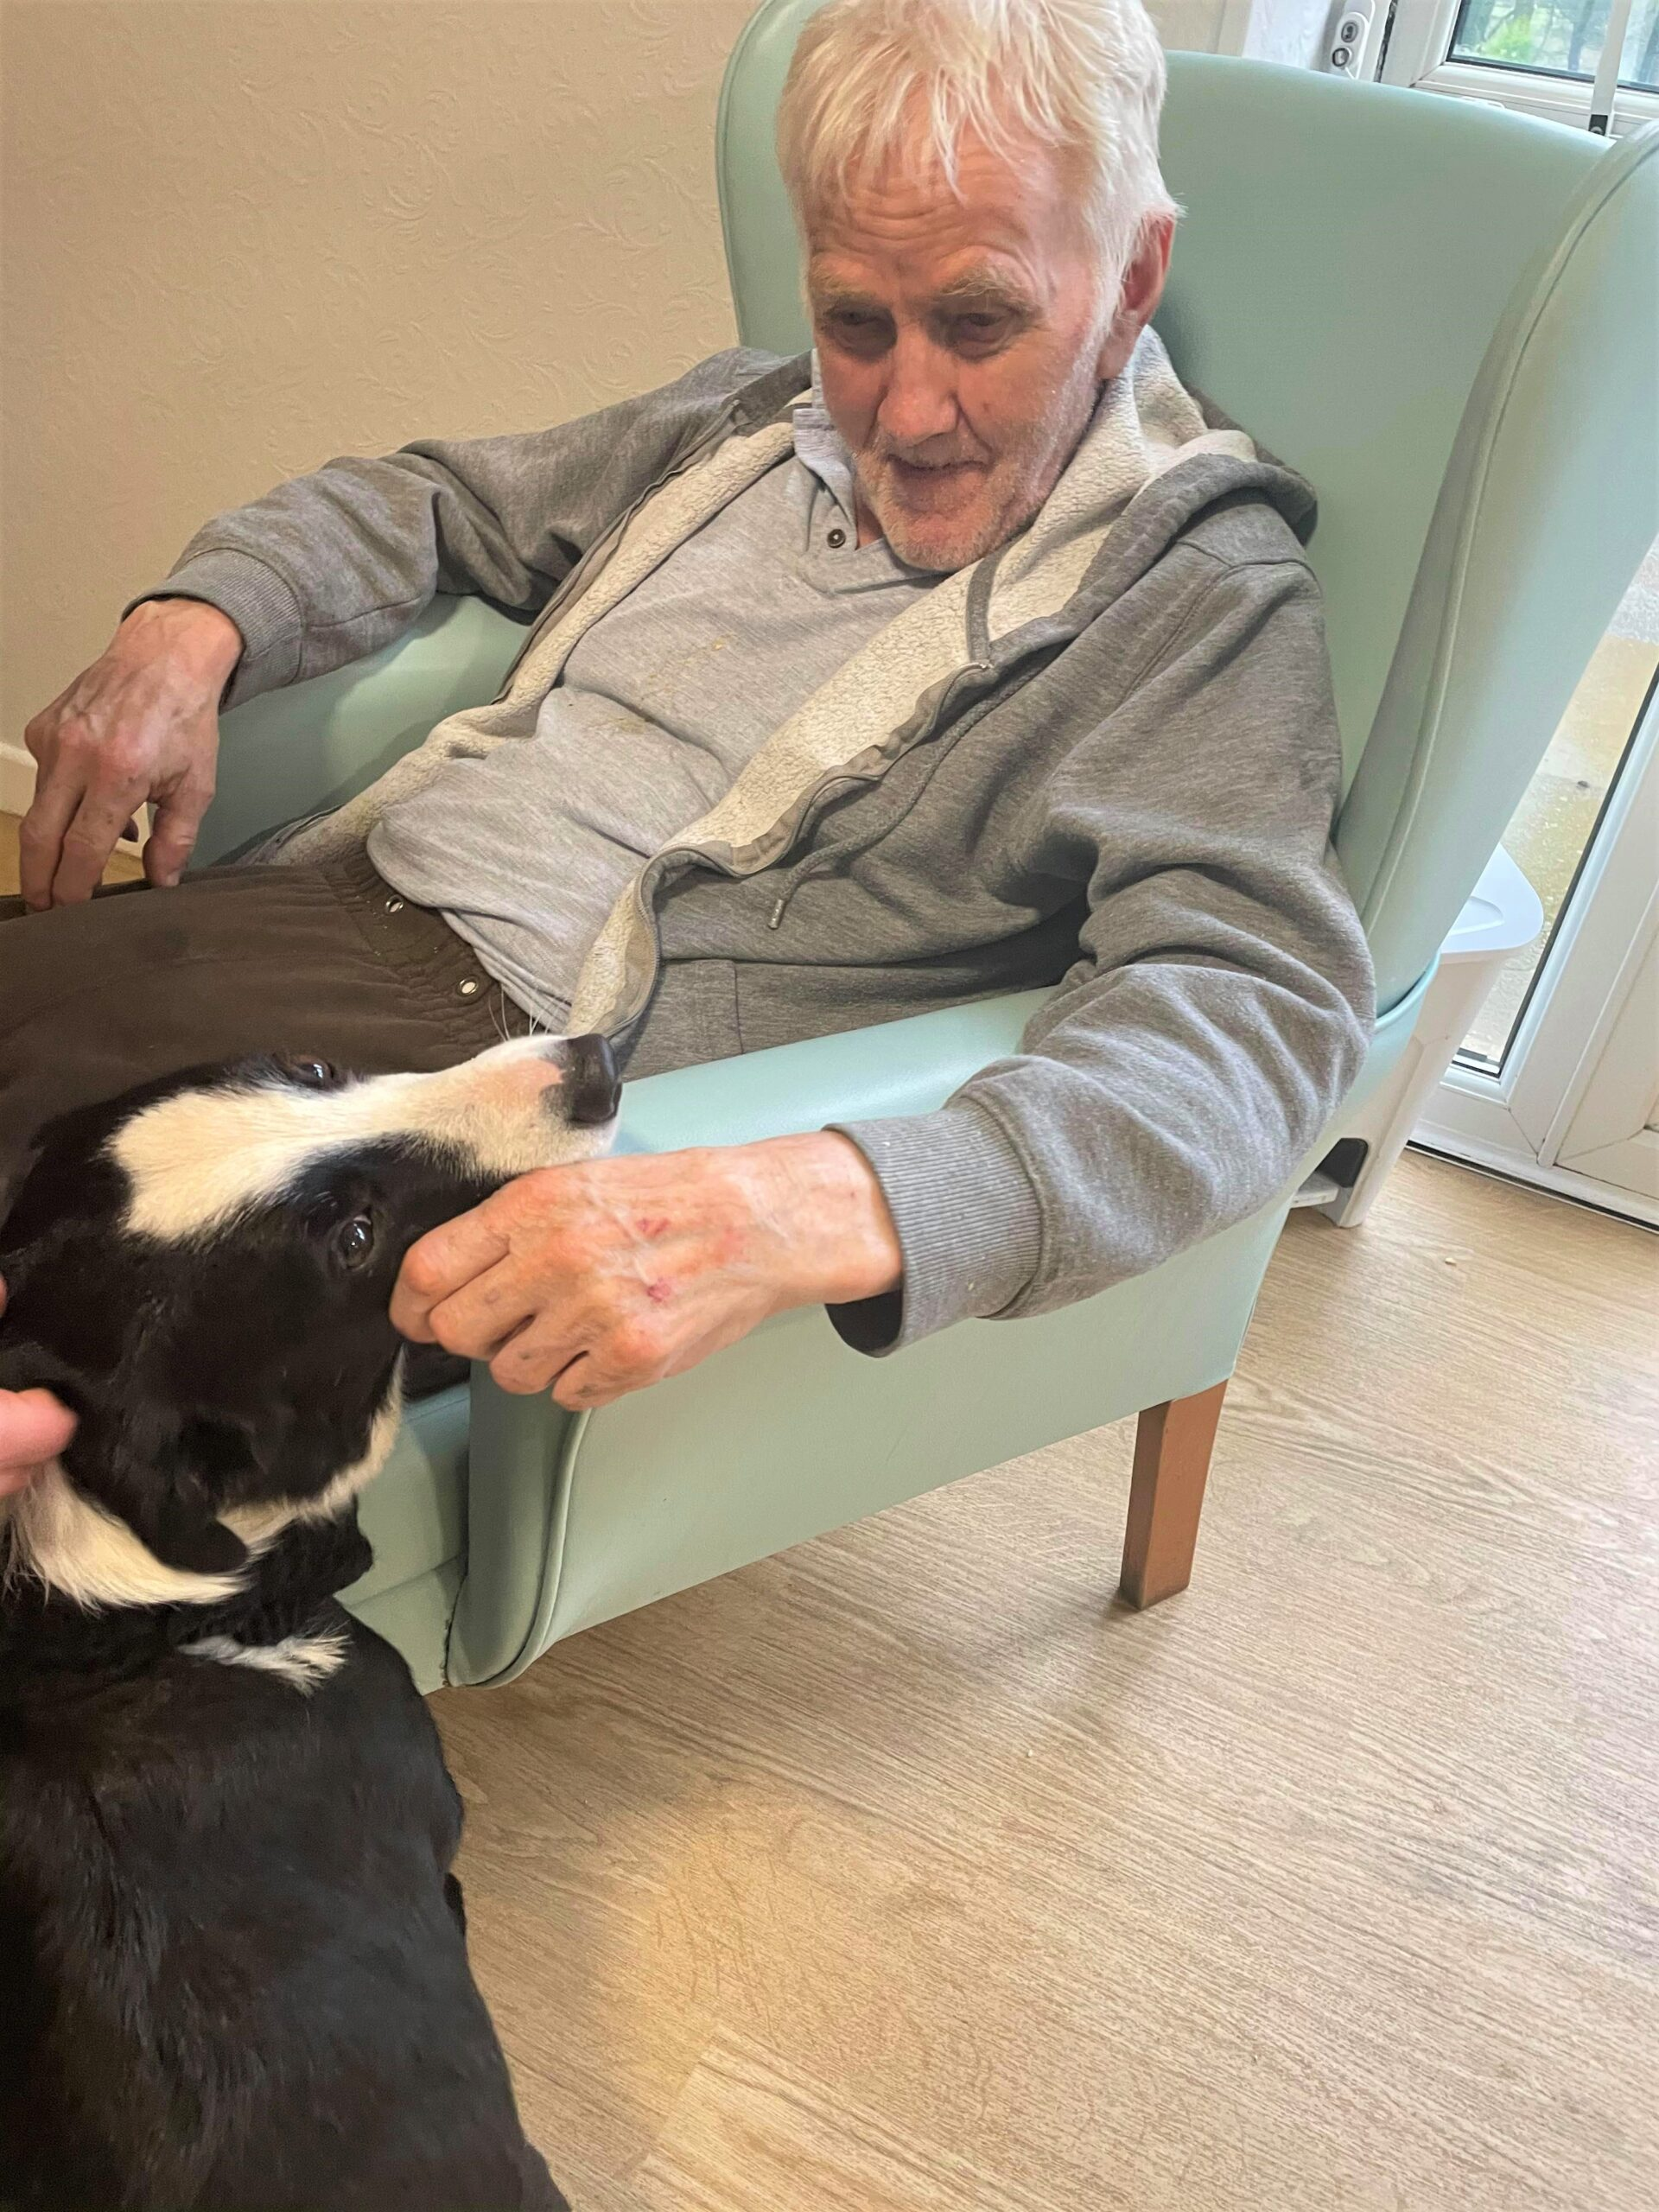 Pet therapy helps mental health